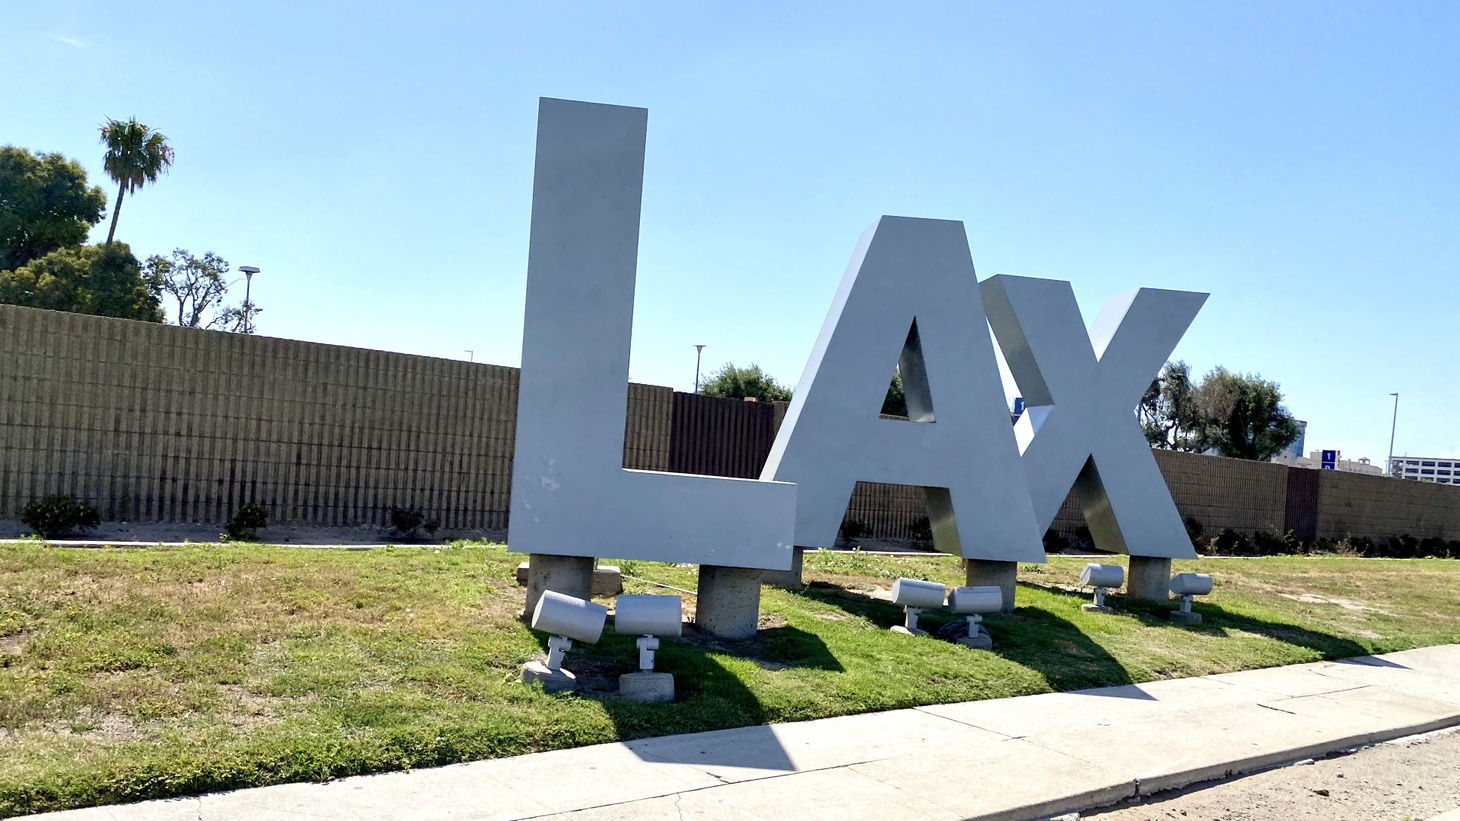 Gone are the days of empty terminals and breezing through security at the airport. Officials at LAX say passenger volume has rebounded from the darkest days of the pandemic to about two-thirds of 2019 levels.